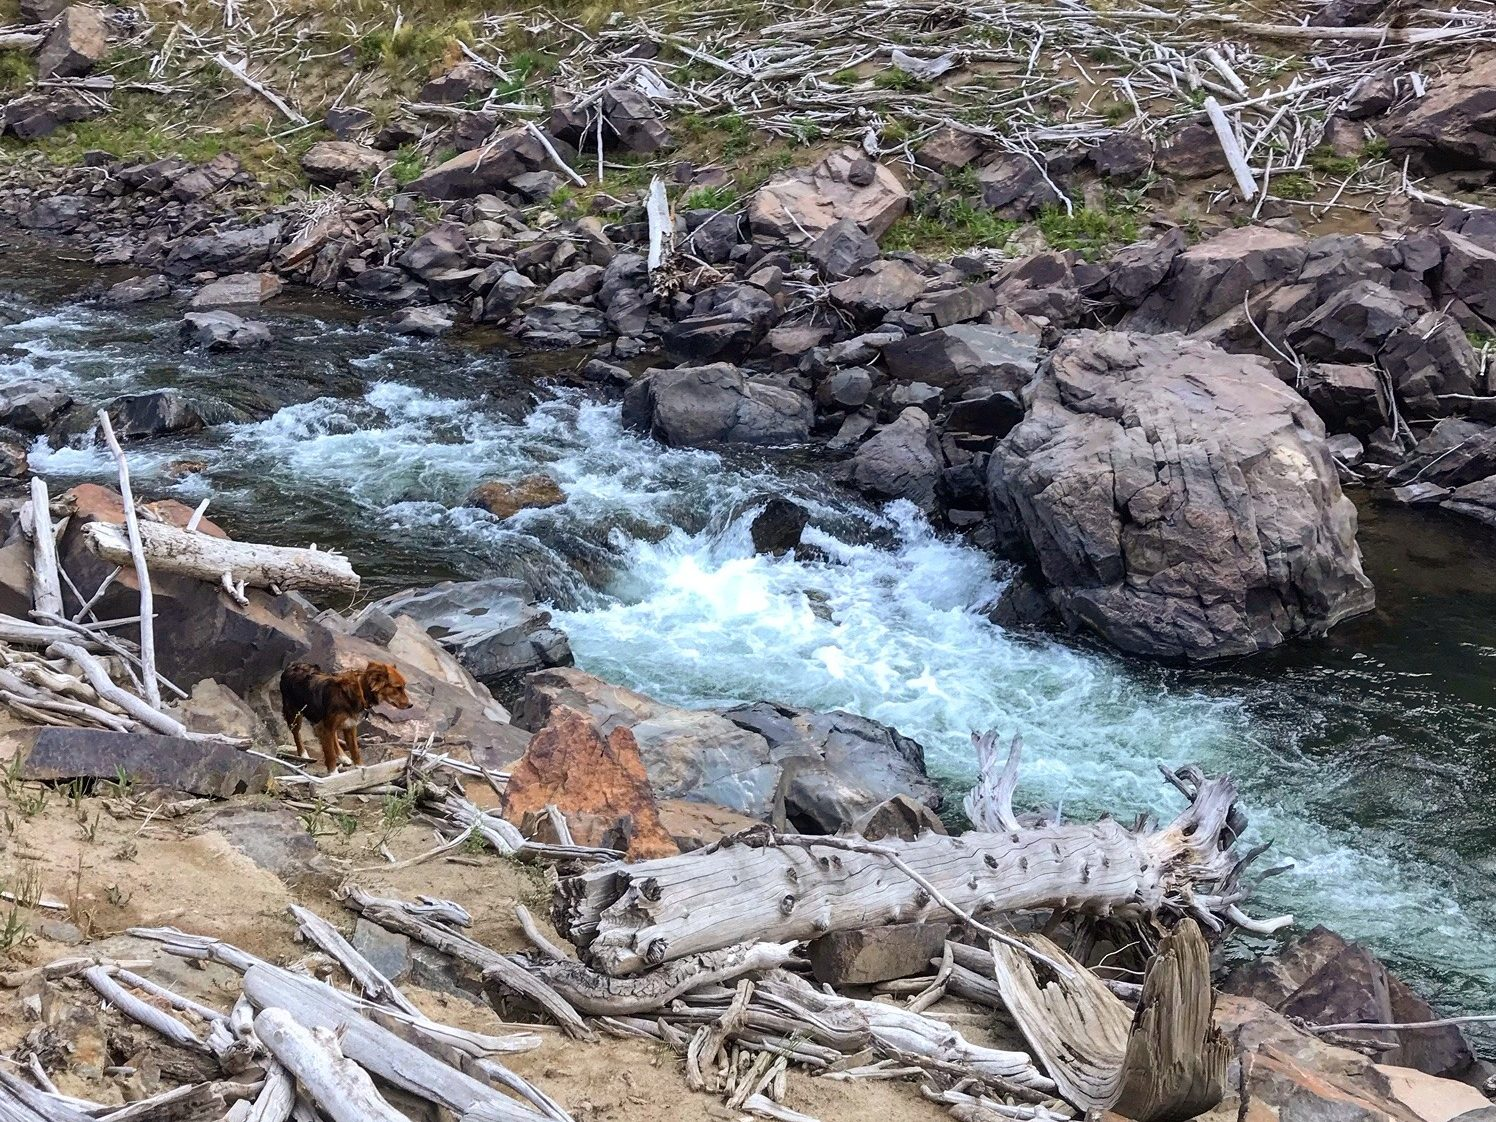 A dog walks on land near logs next to a roaring river.